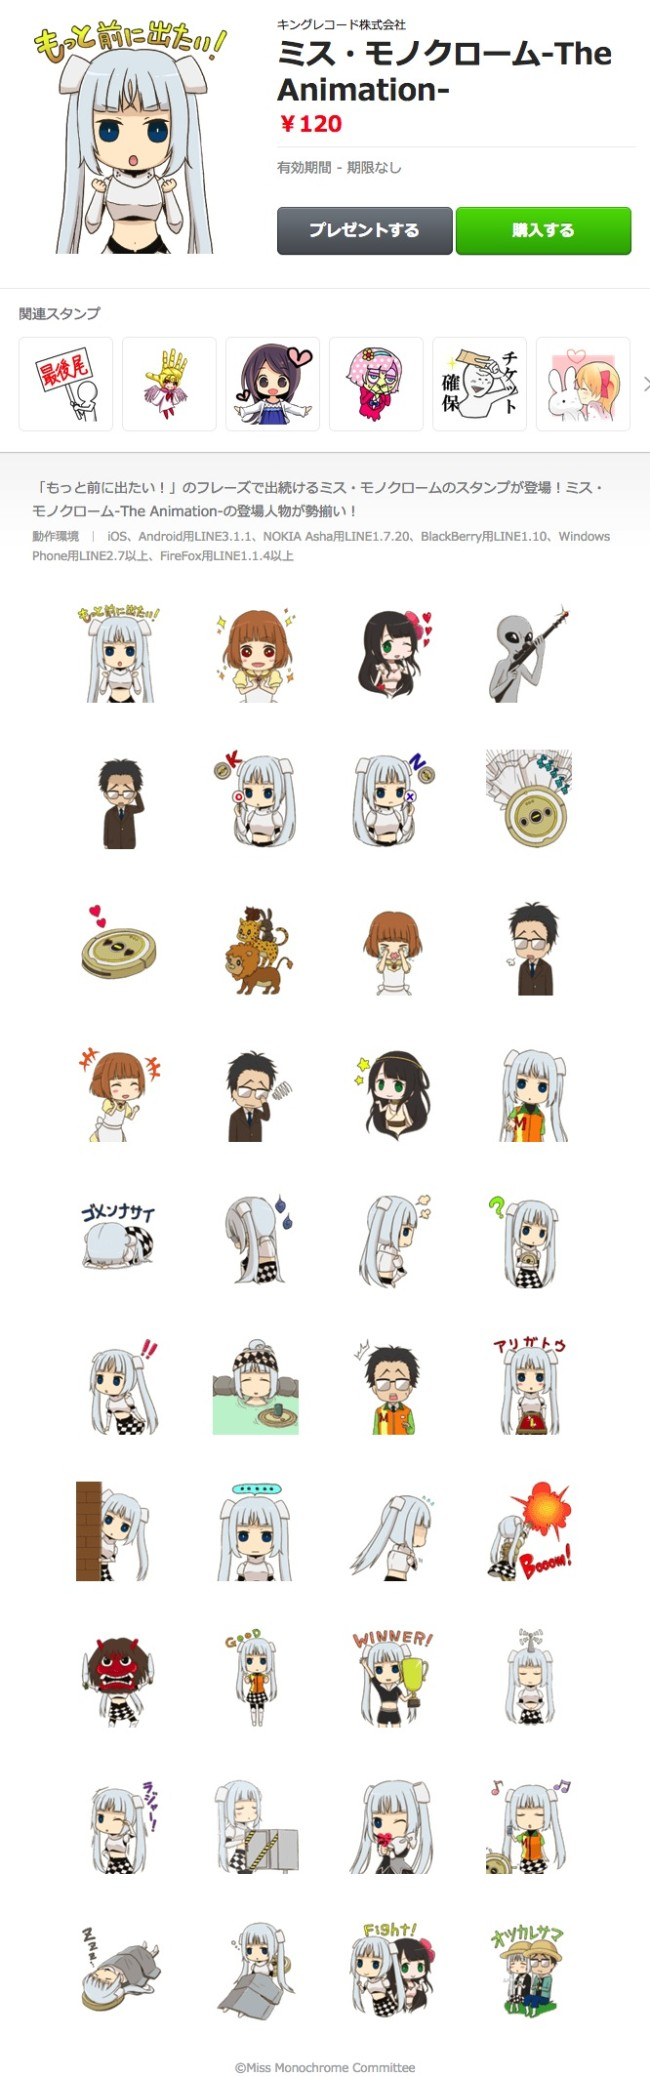 screencapture-store-line-me-stickershop-product-1083375-ja-1428365901696 のコピー